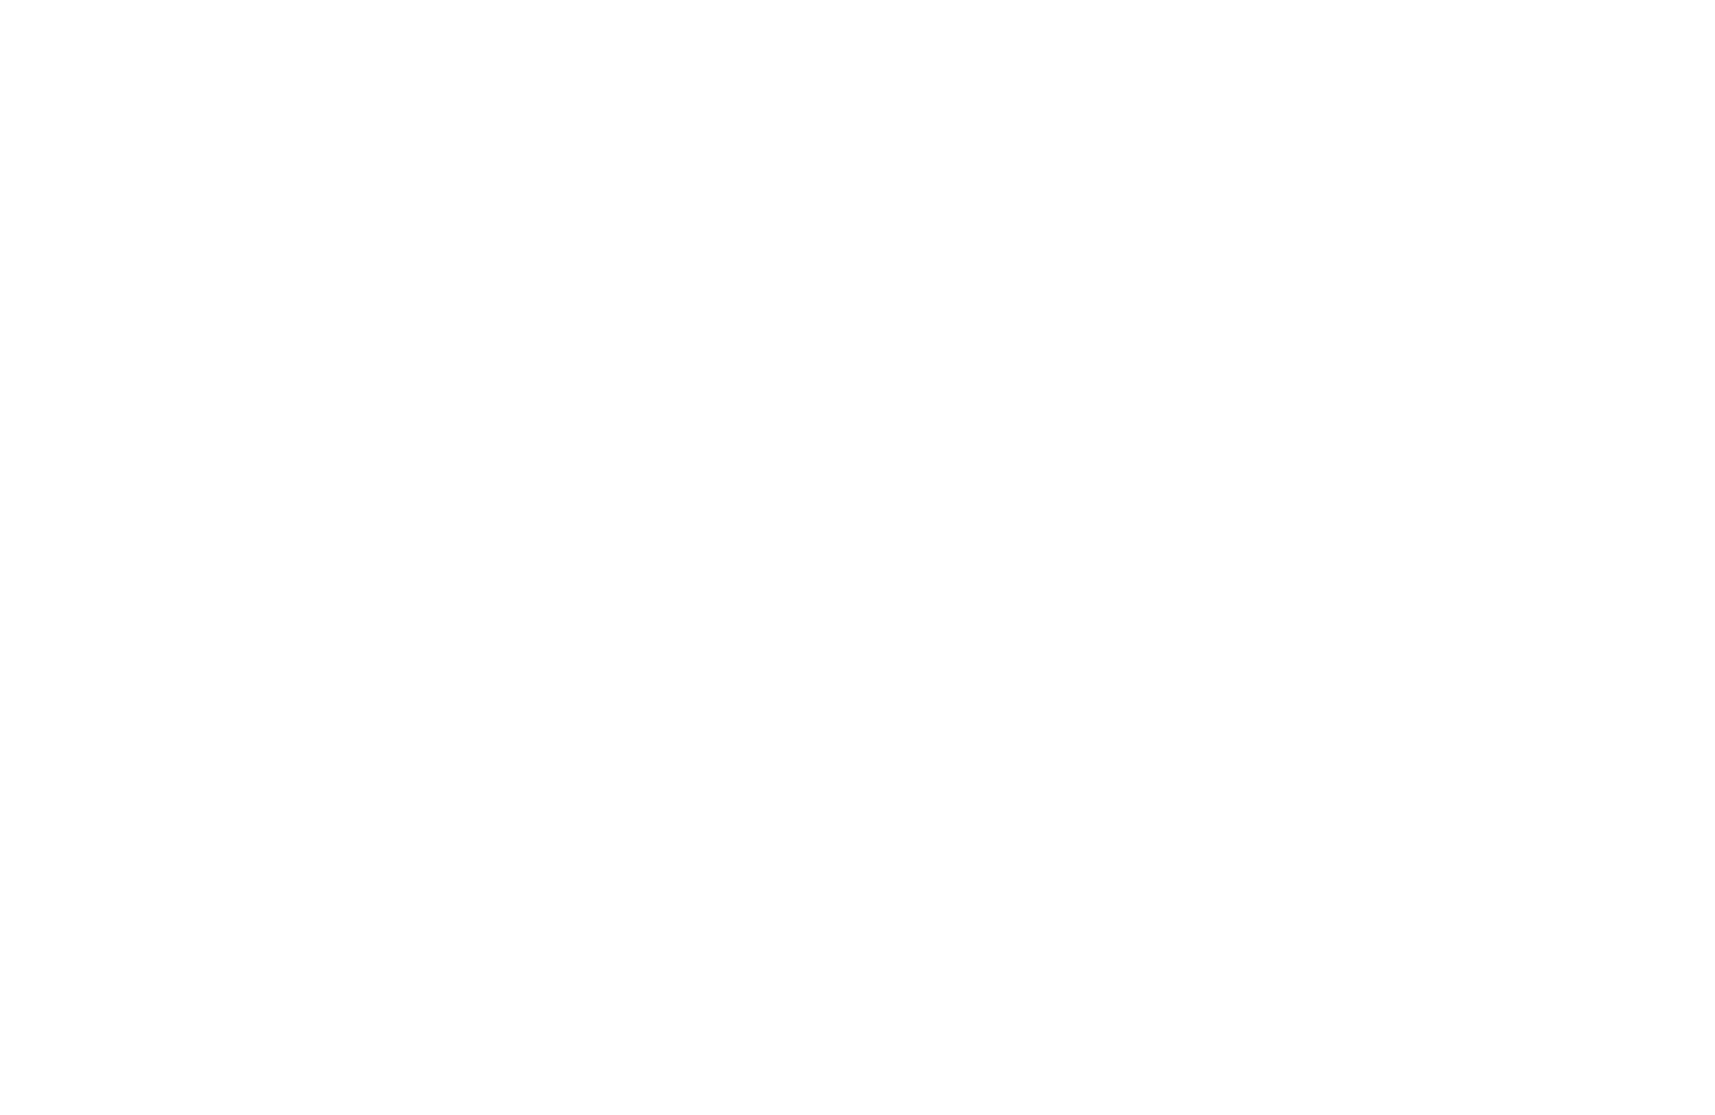 dezzadezza | graphic designer